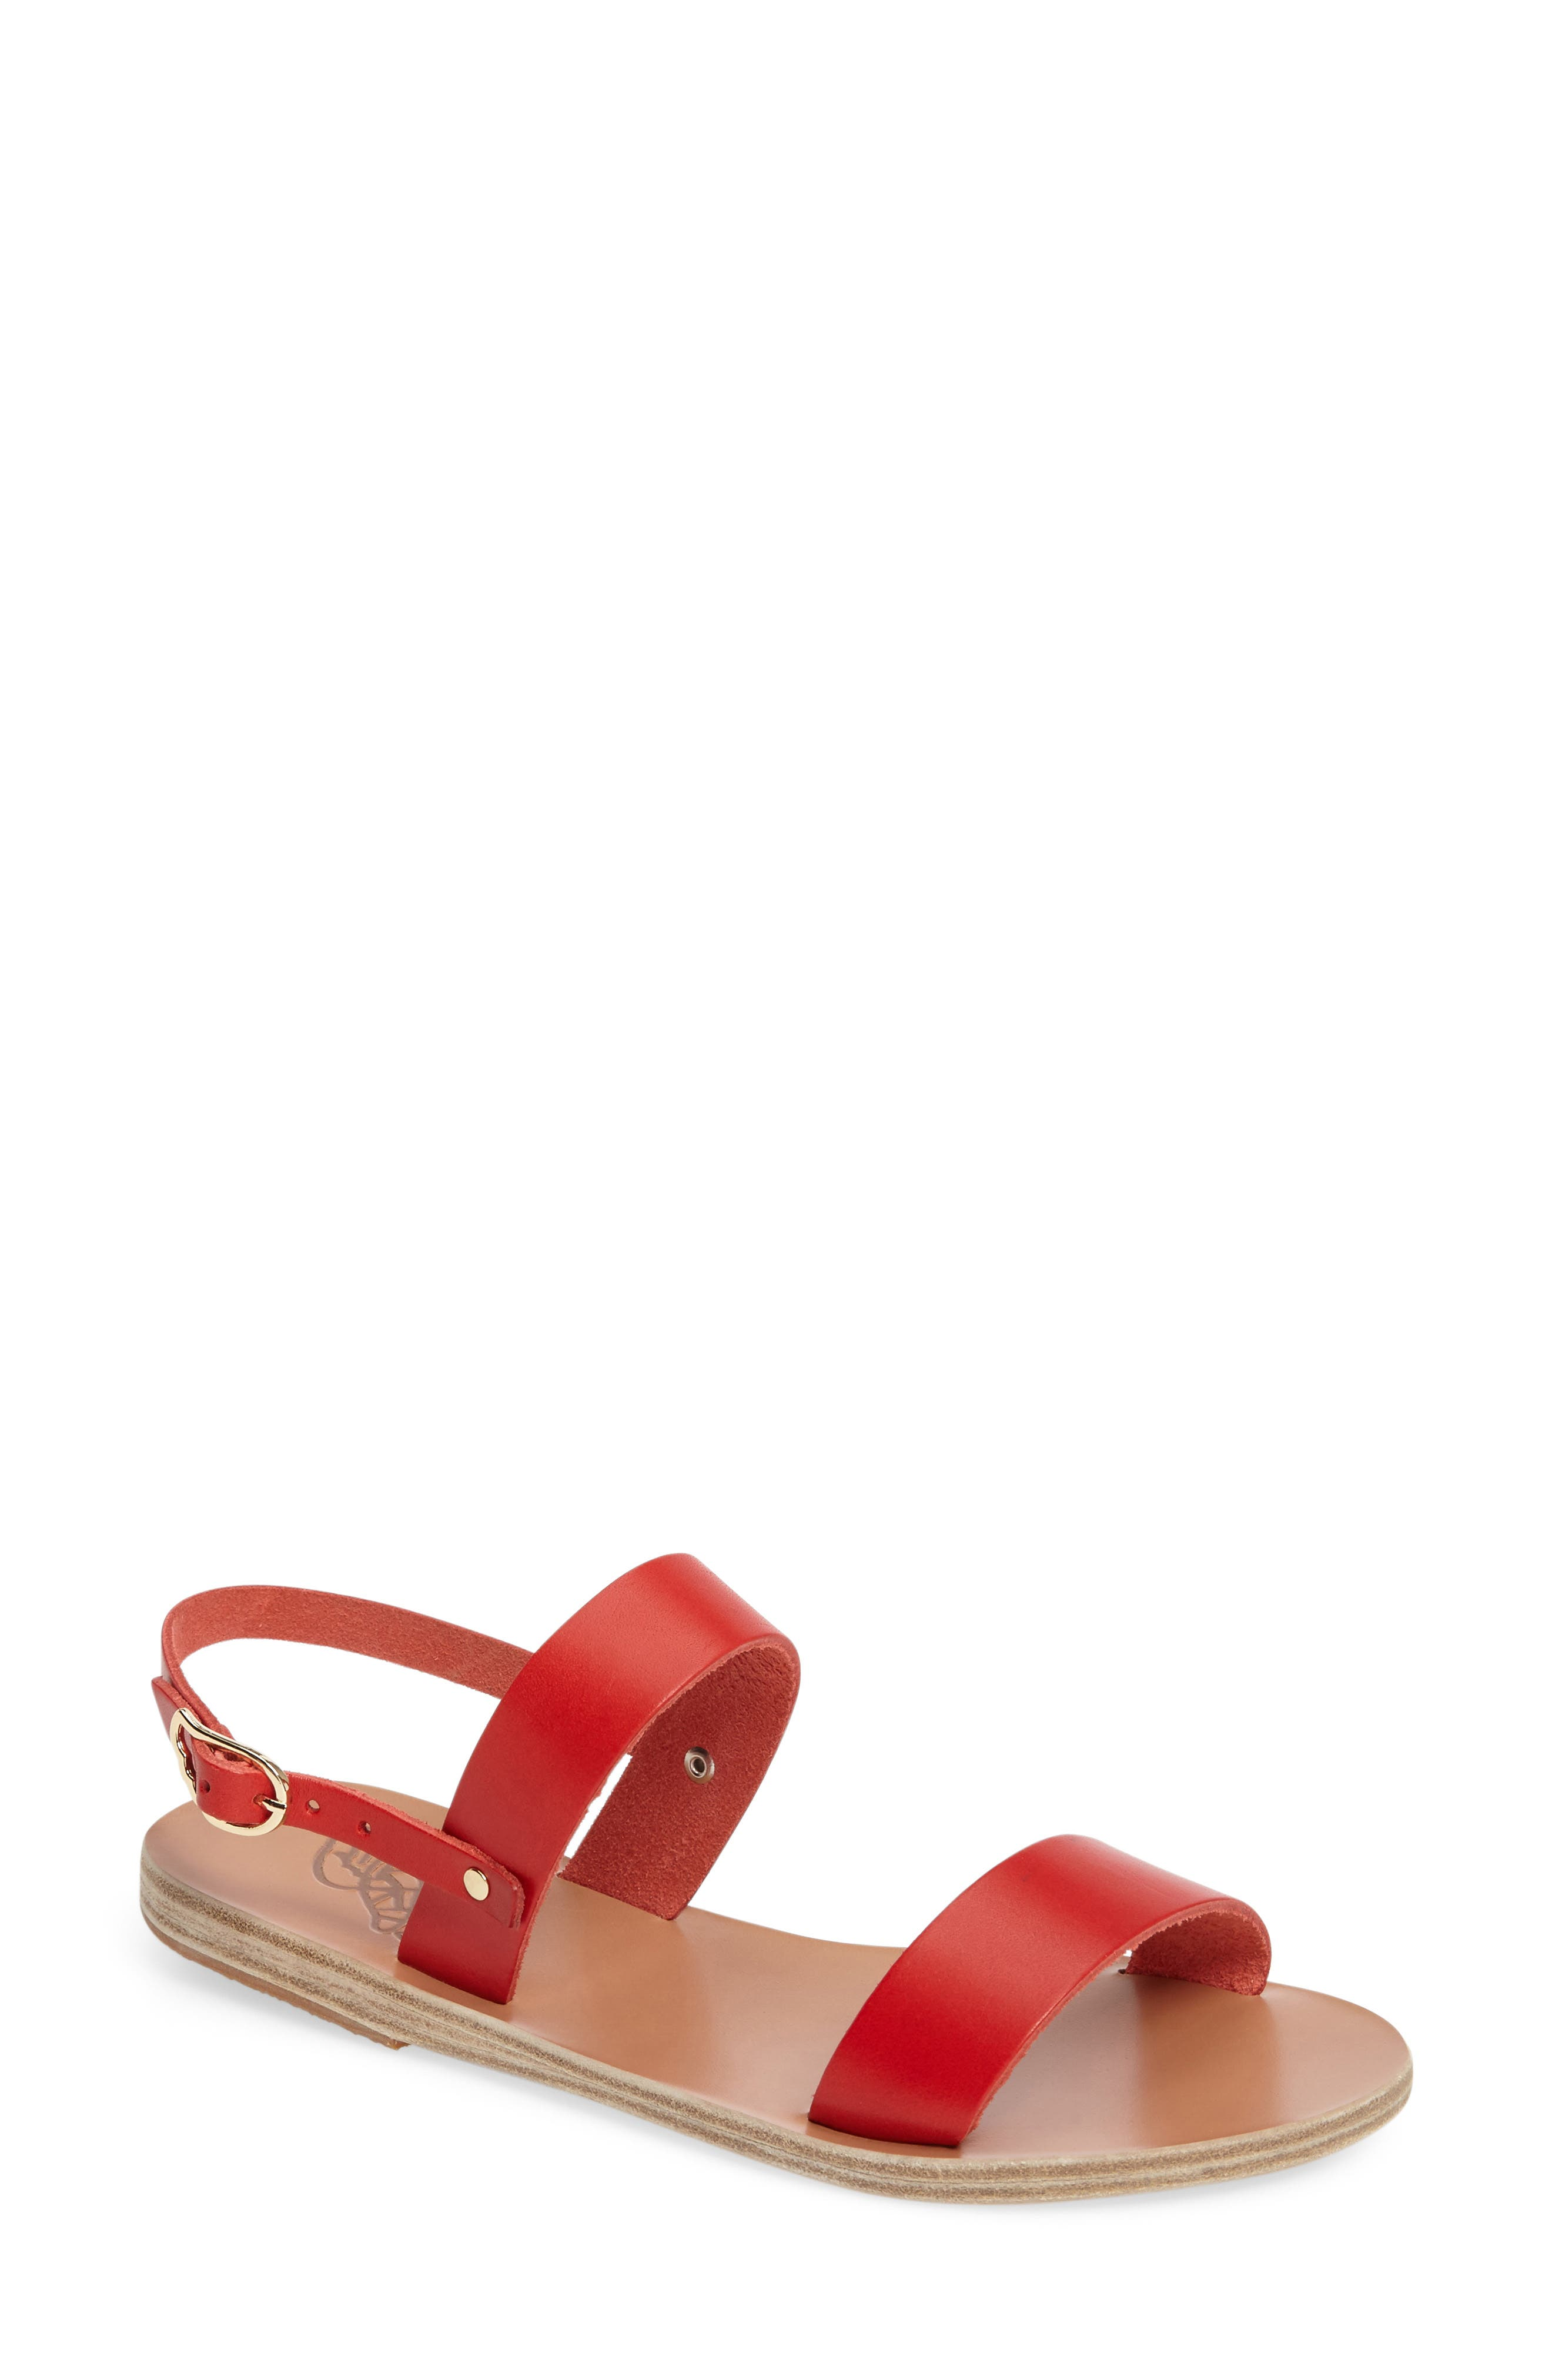 Clio Slingback Sandal,                             Main thumbnail 1, color,                             Red